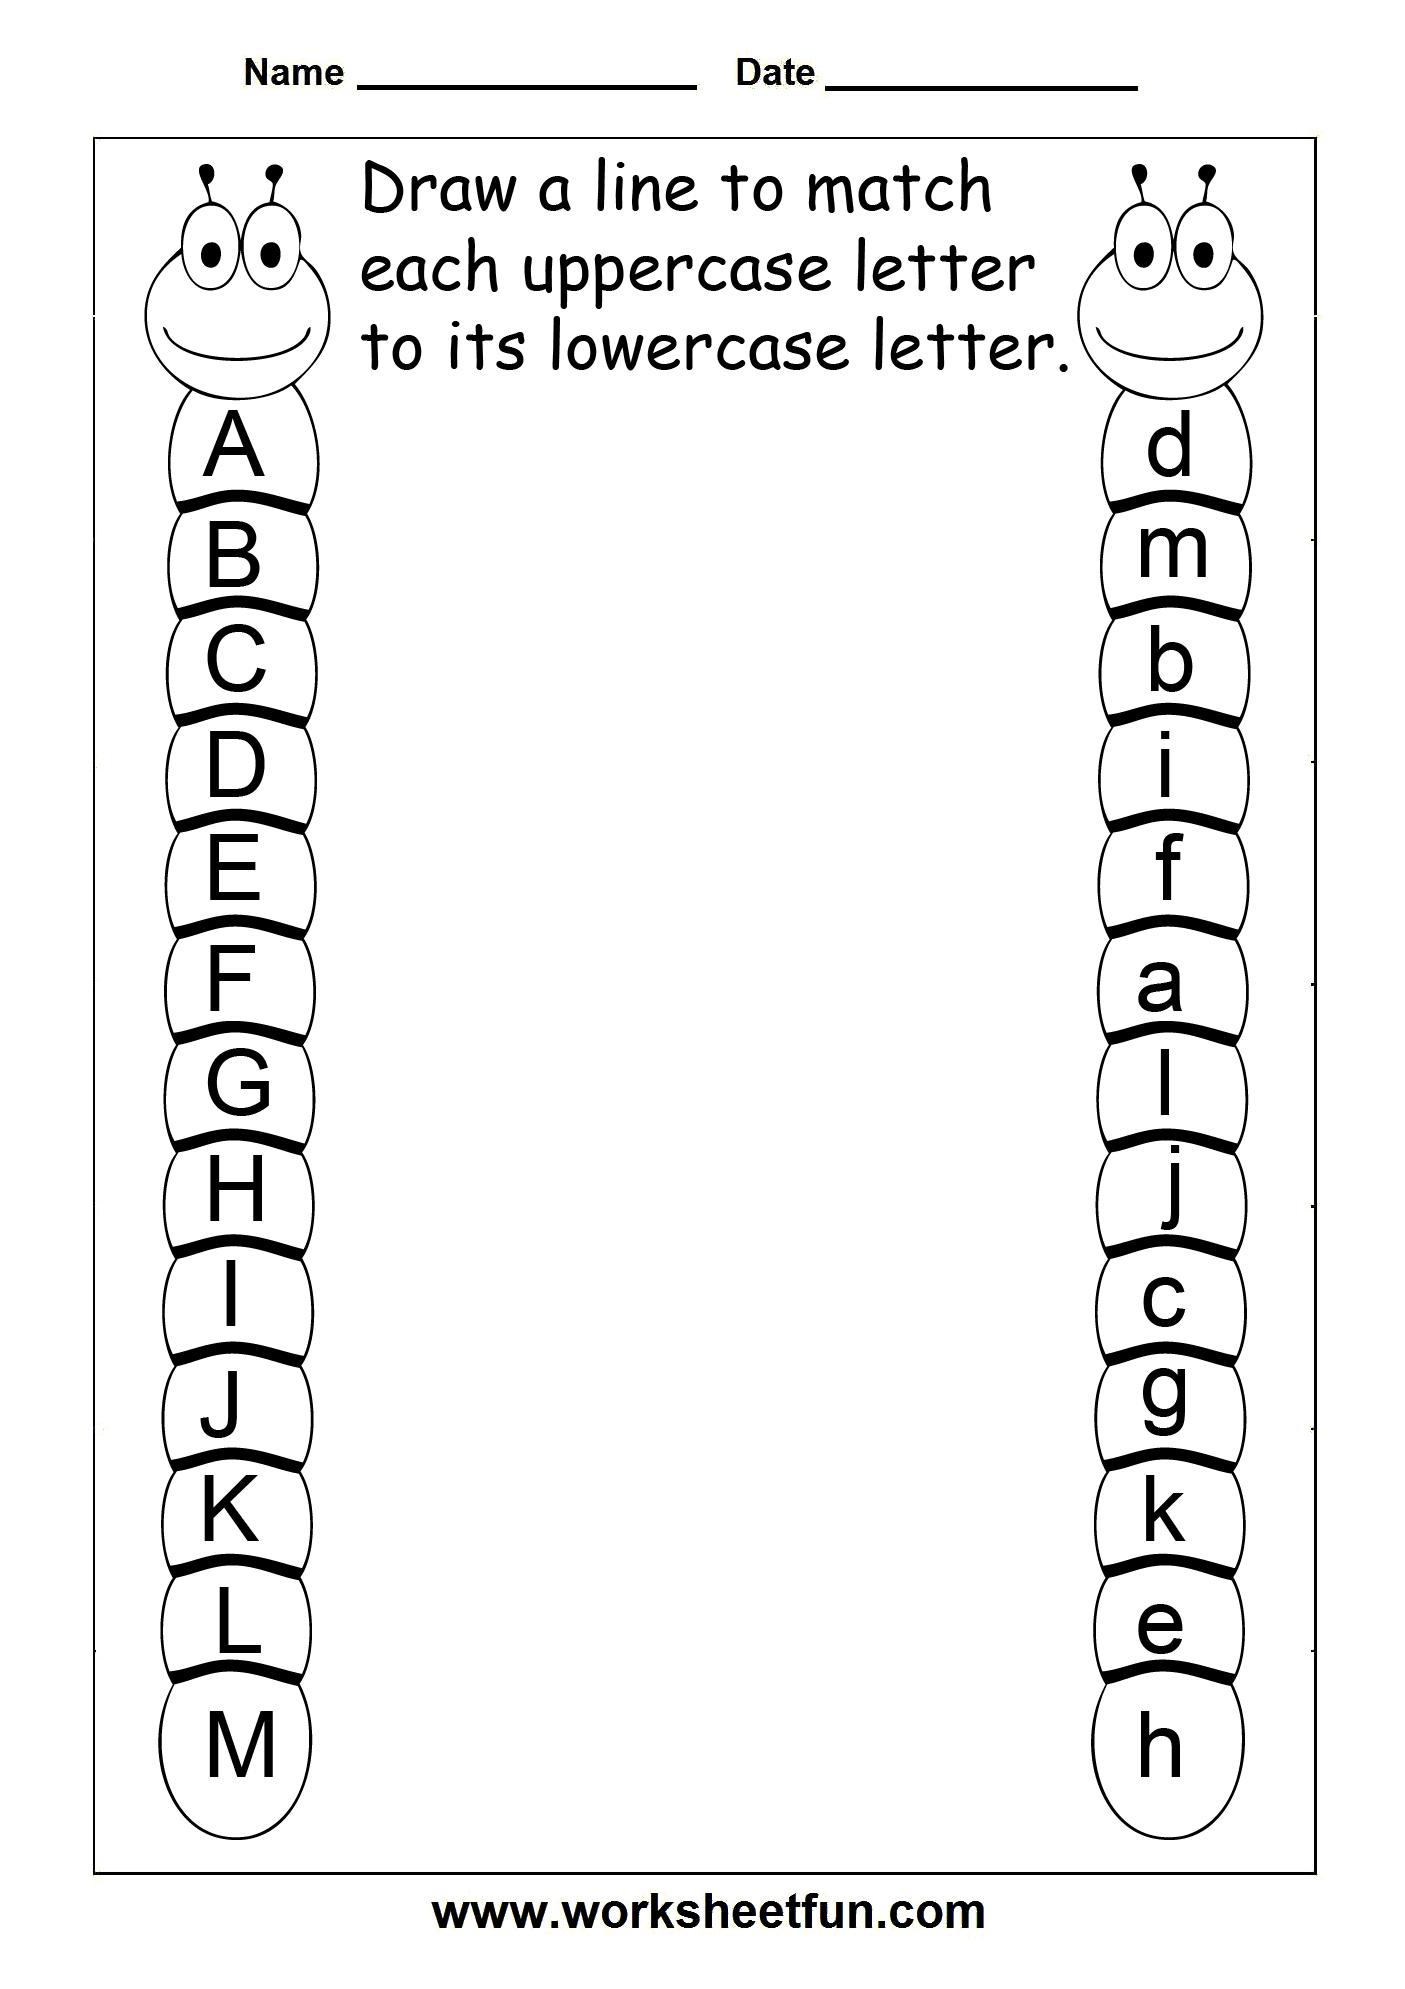 Free Worksheet Letter Identification Worksheets 17 best images about letters on pinterest alphabet words plays and preschool worksheets